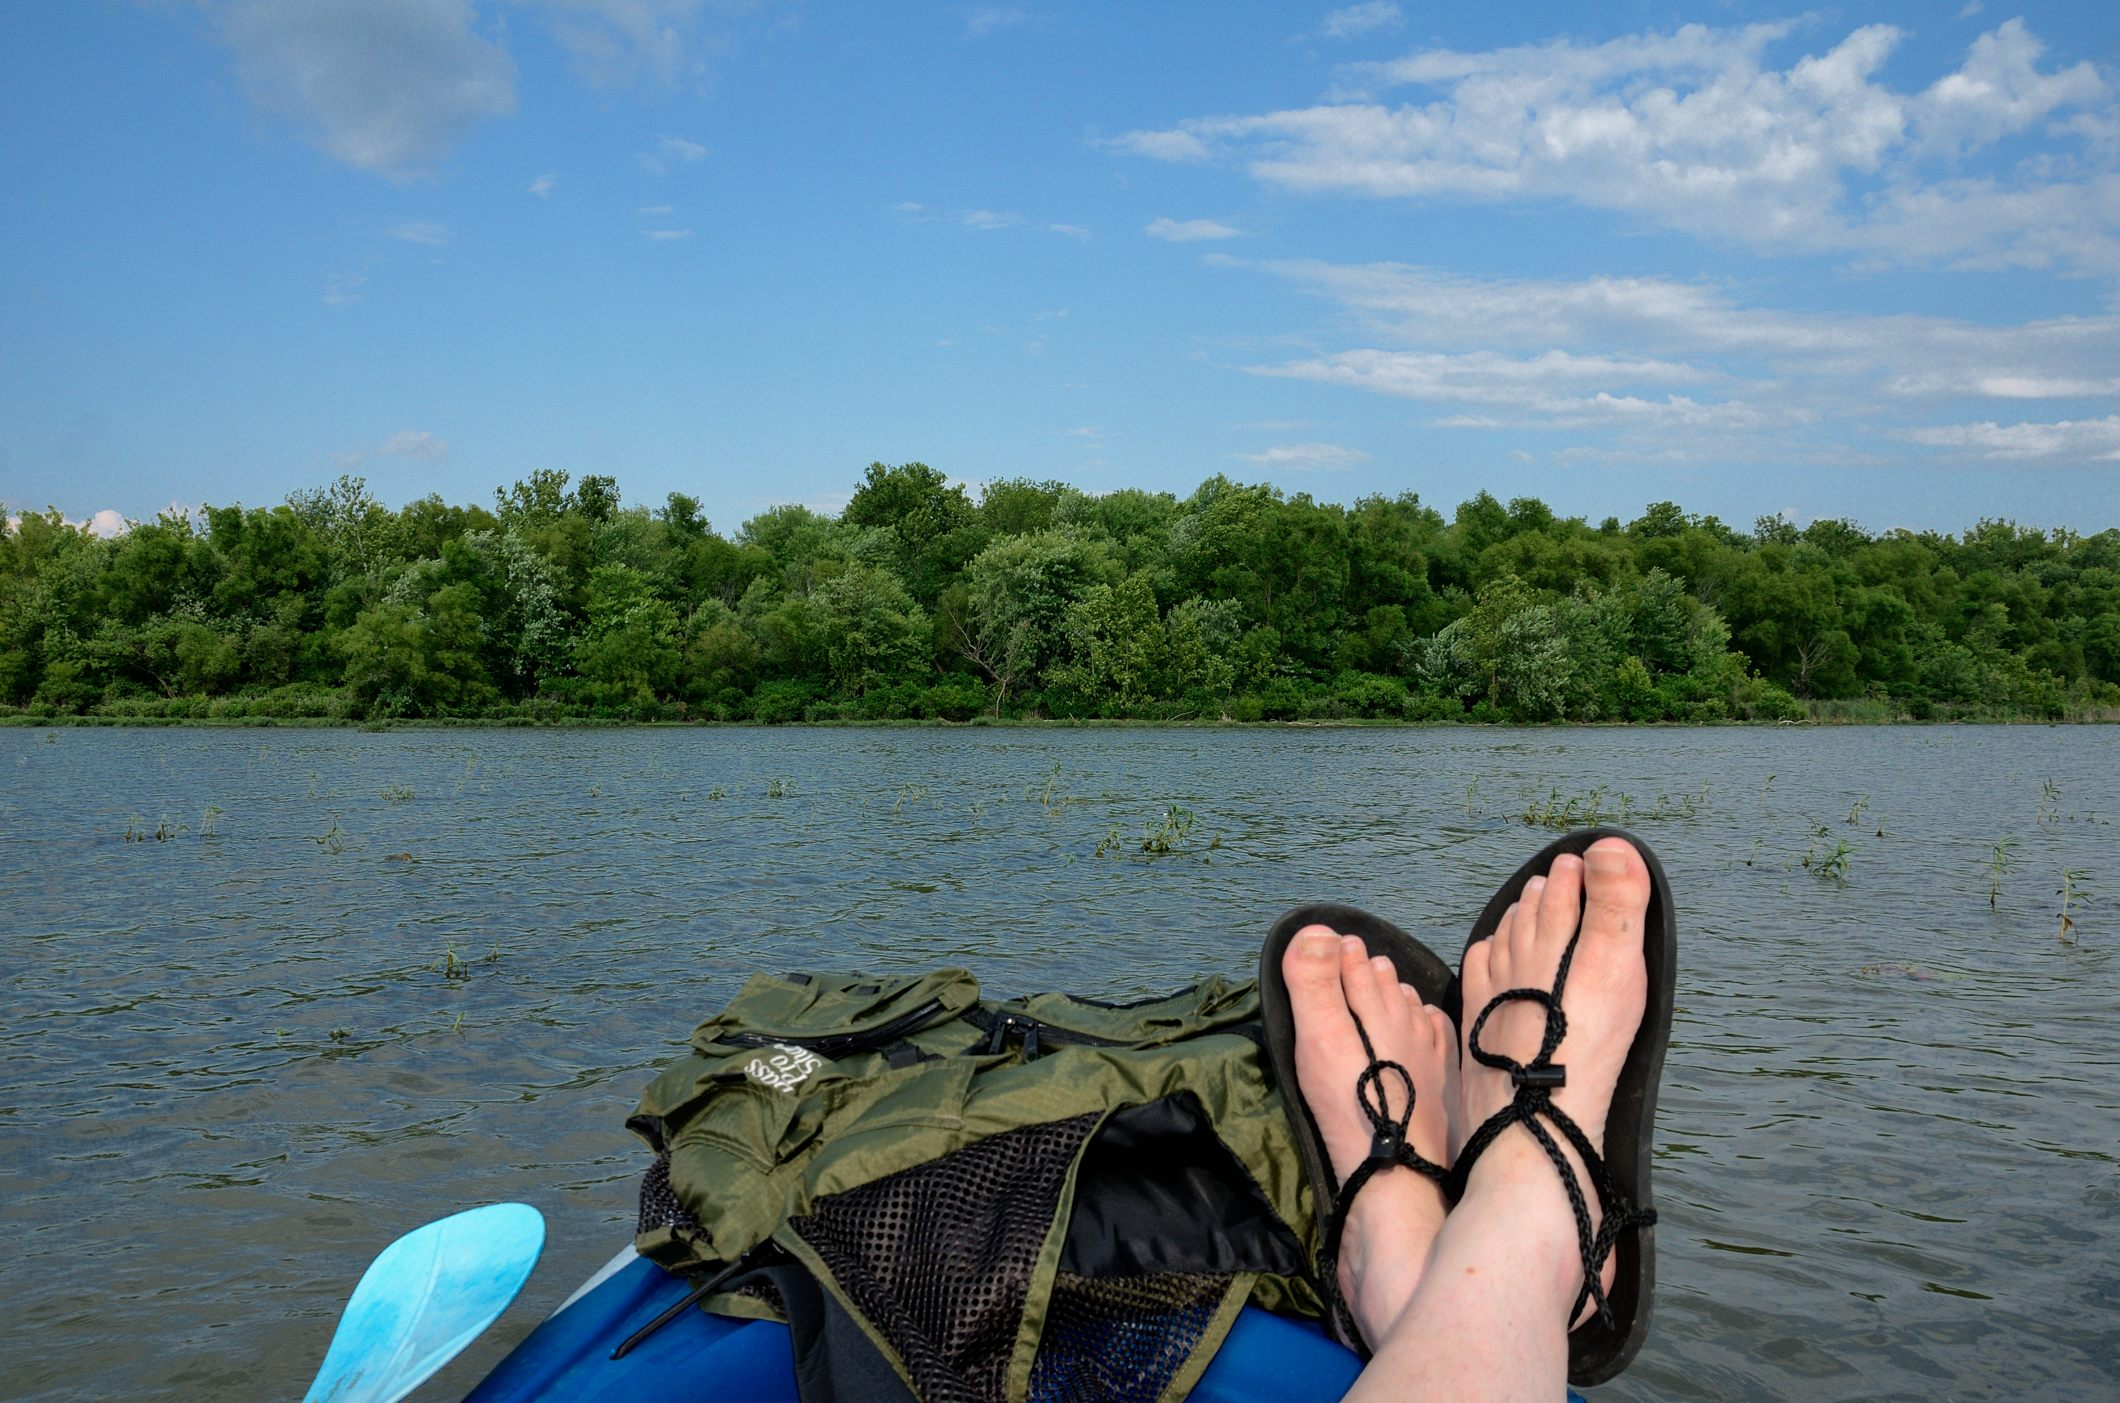 Taking a rest on lake Springfield